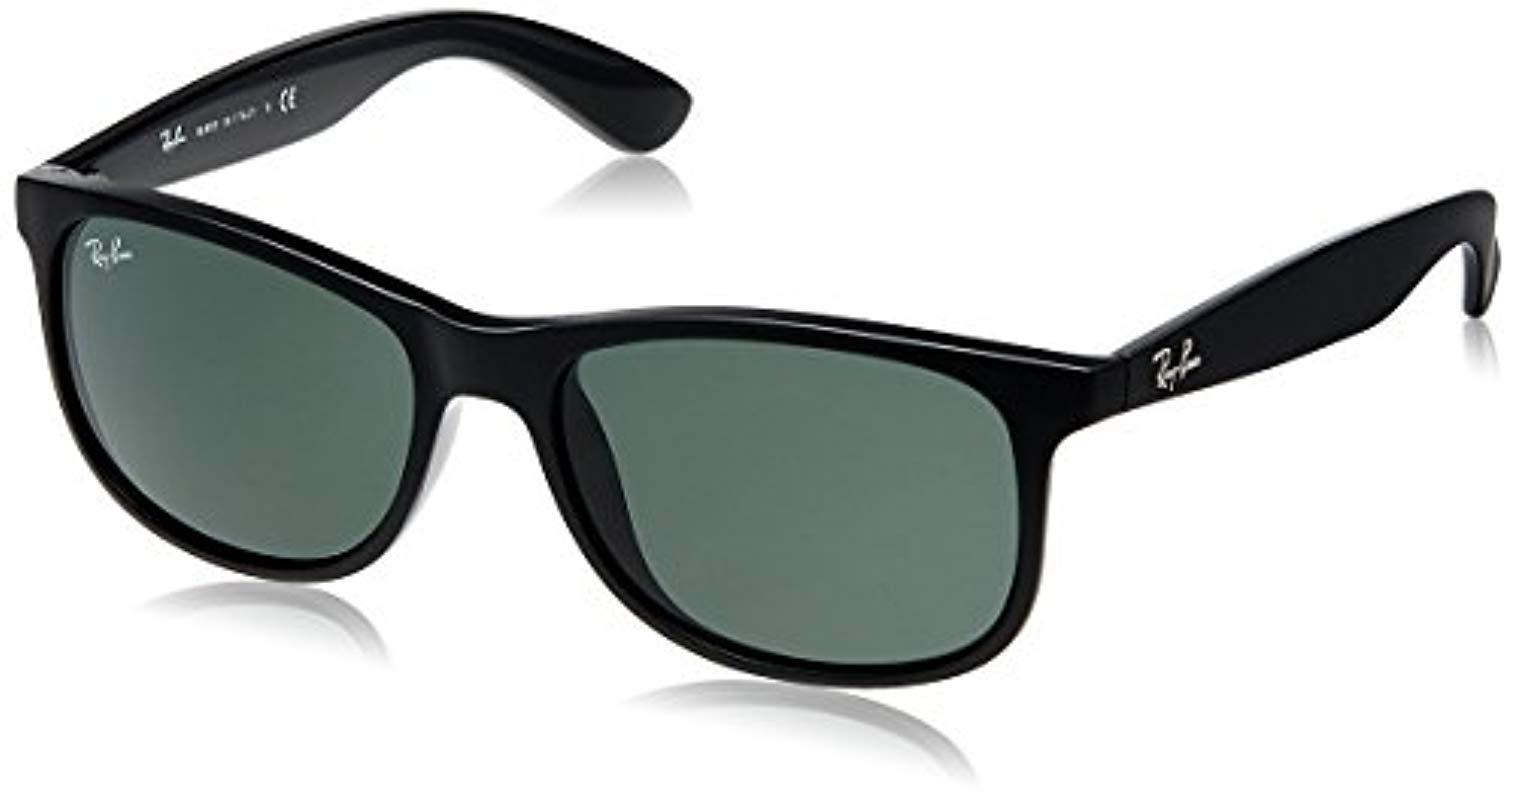 0ddf8108d63 Lyst - Ray-Ban Andy Rb4202 606971 Non-polarized Sunglasses